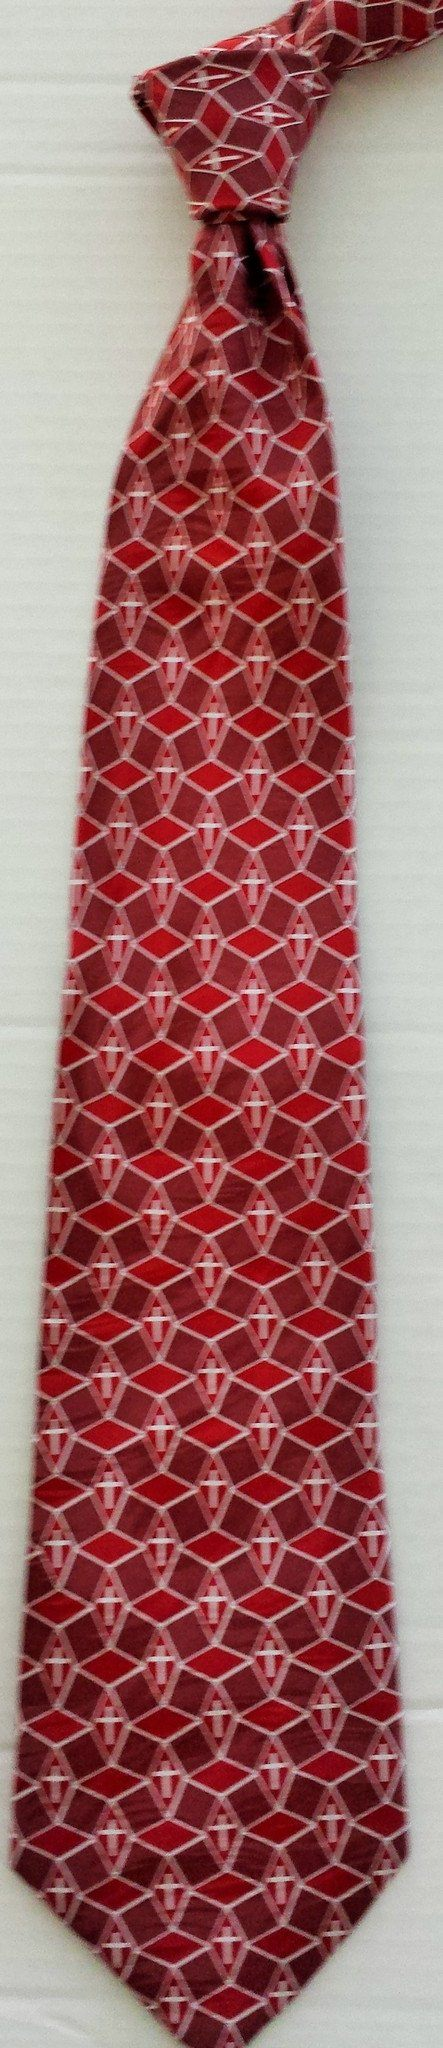 Accessories - BURGUNDY SILK TIE